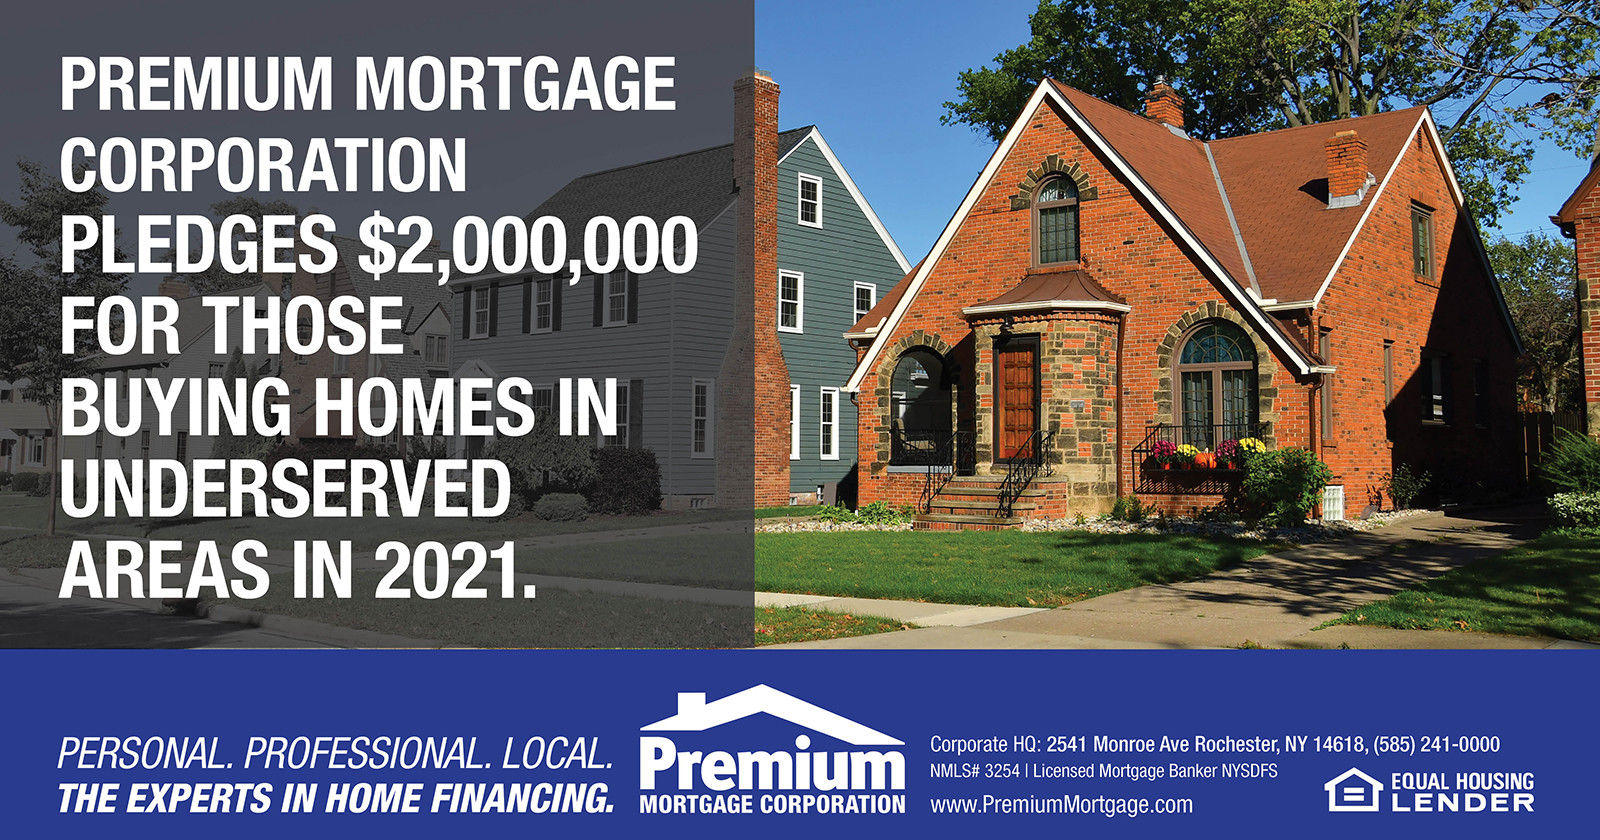 We are pledging $2,000,000 for those buying homes in underserved areas in 2021.